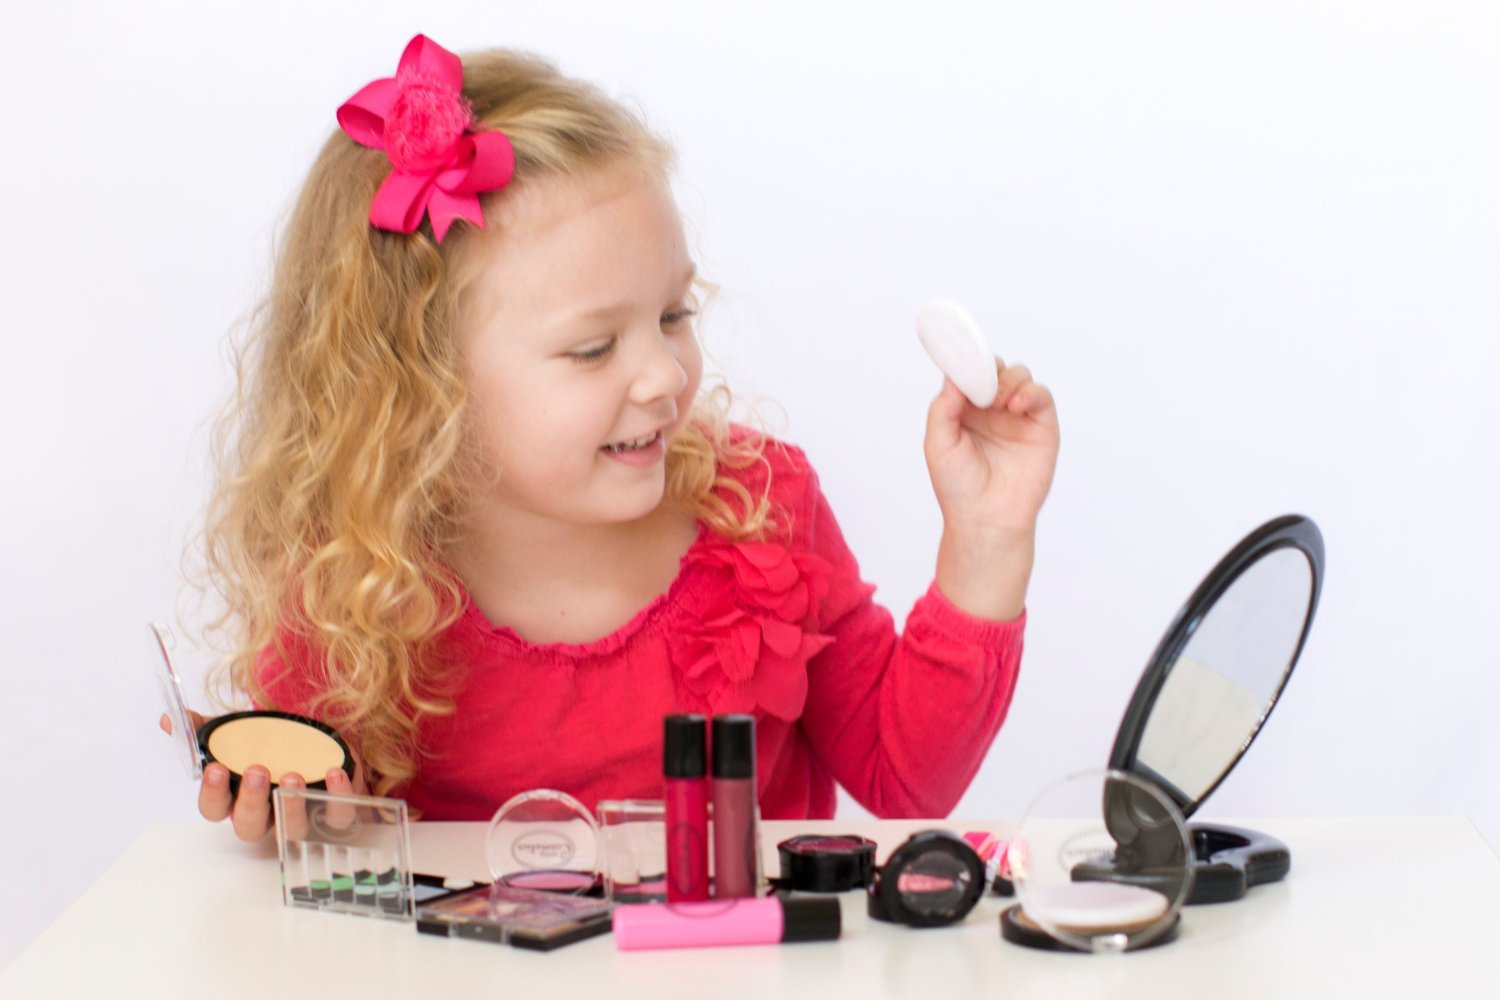 Girls play makeup